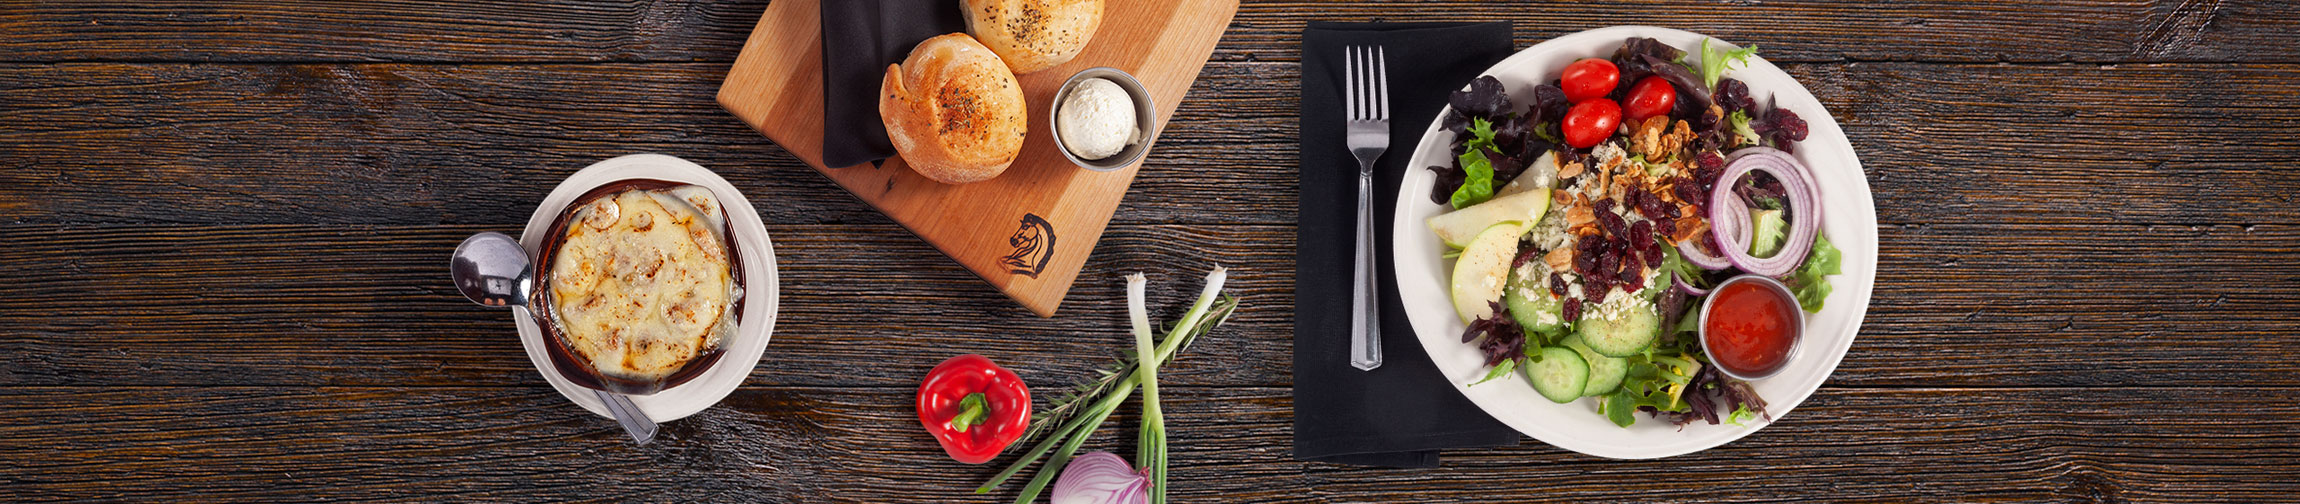 Knight's menu items on a wooden table